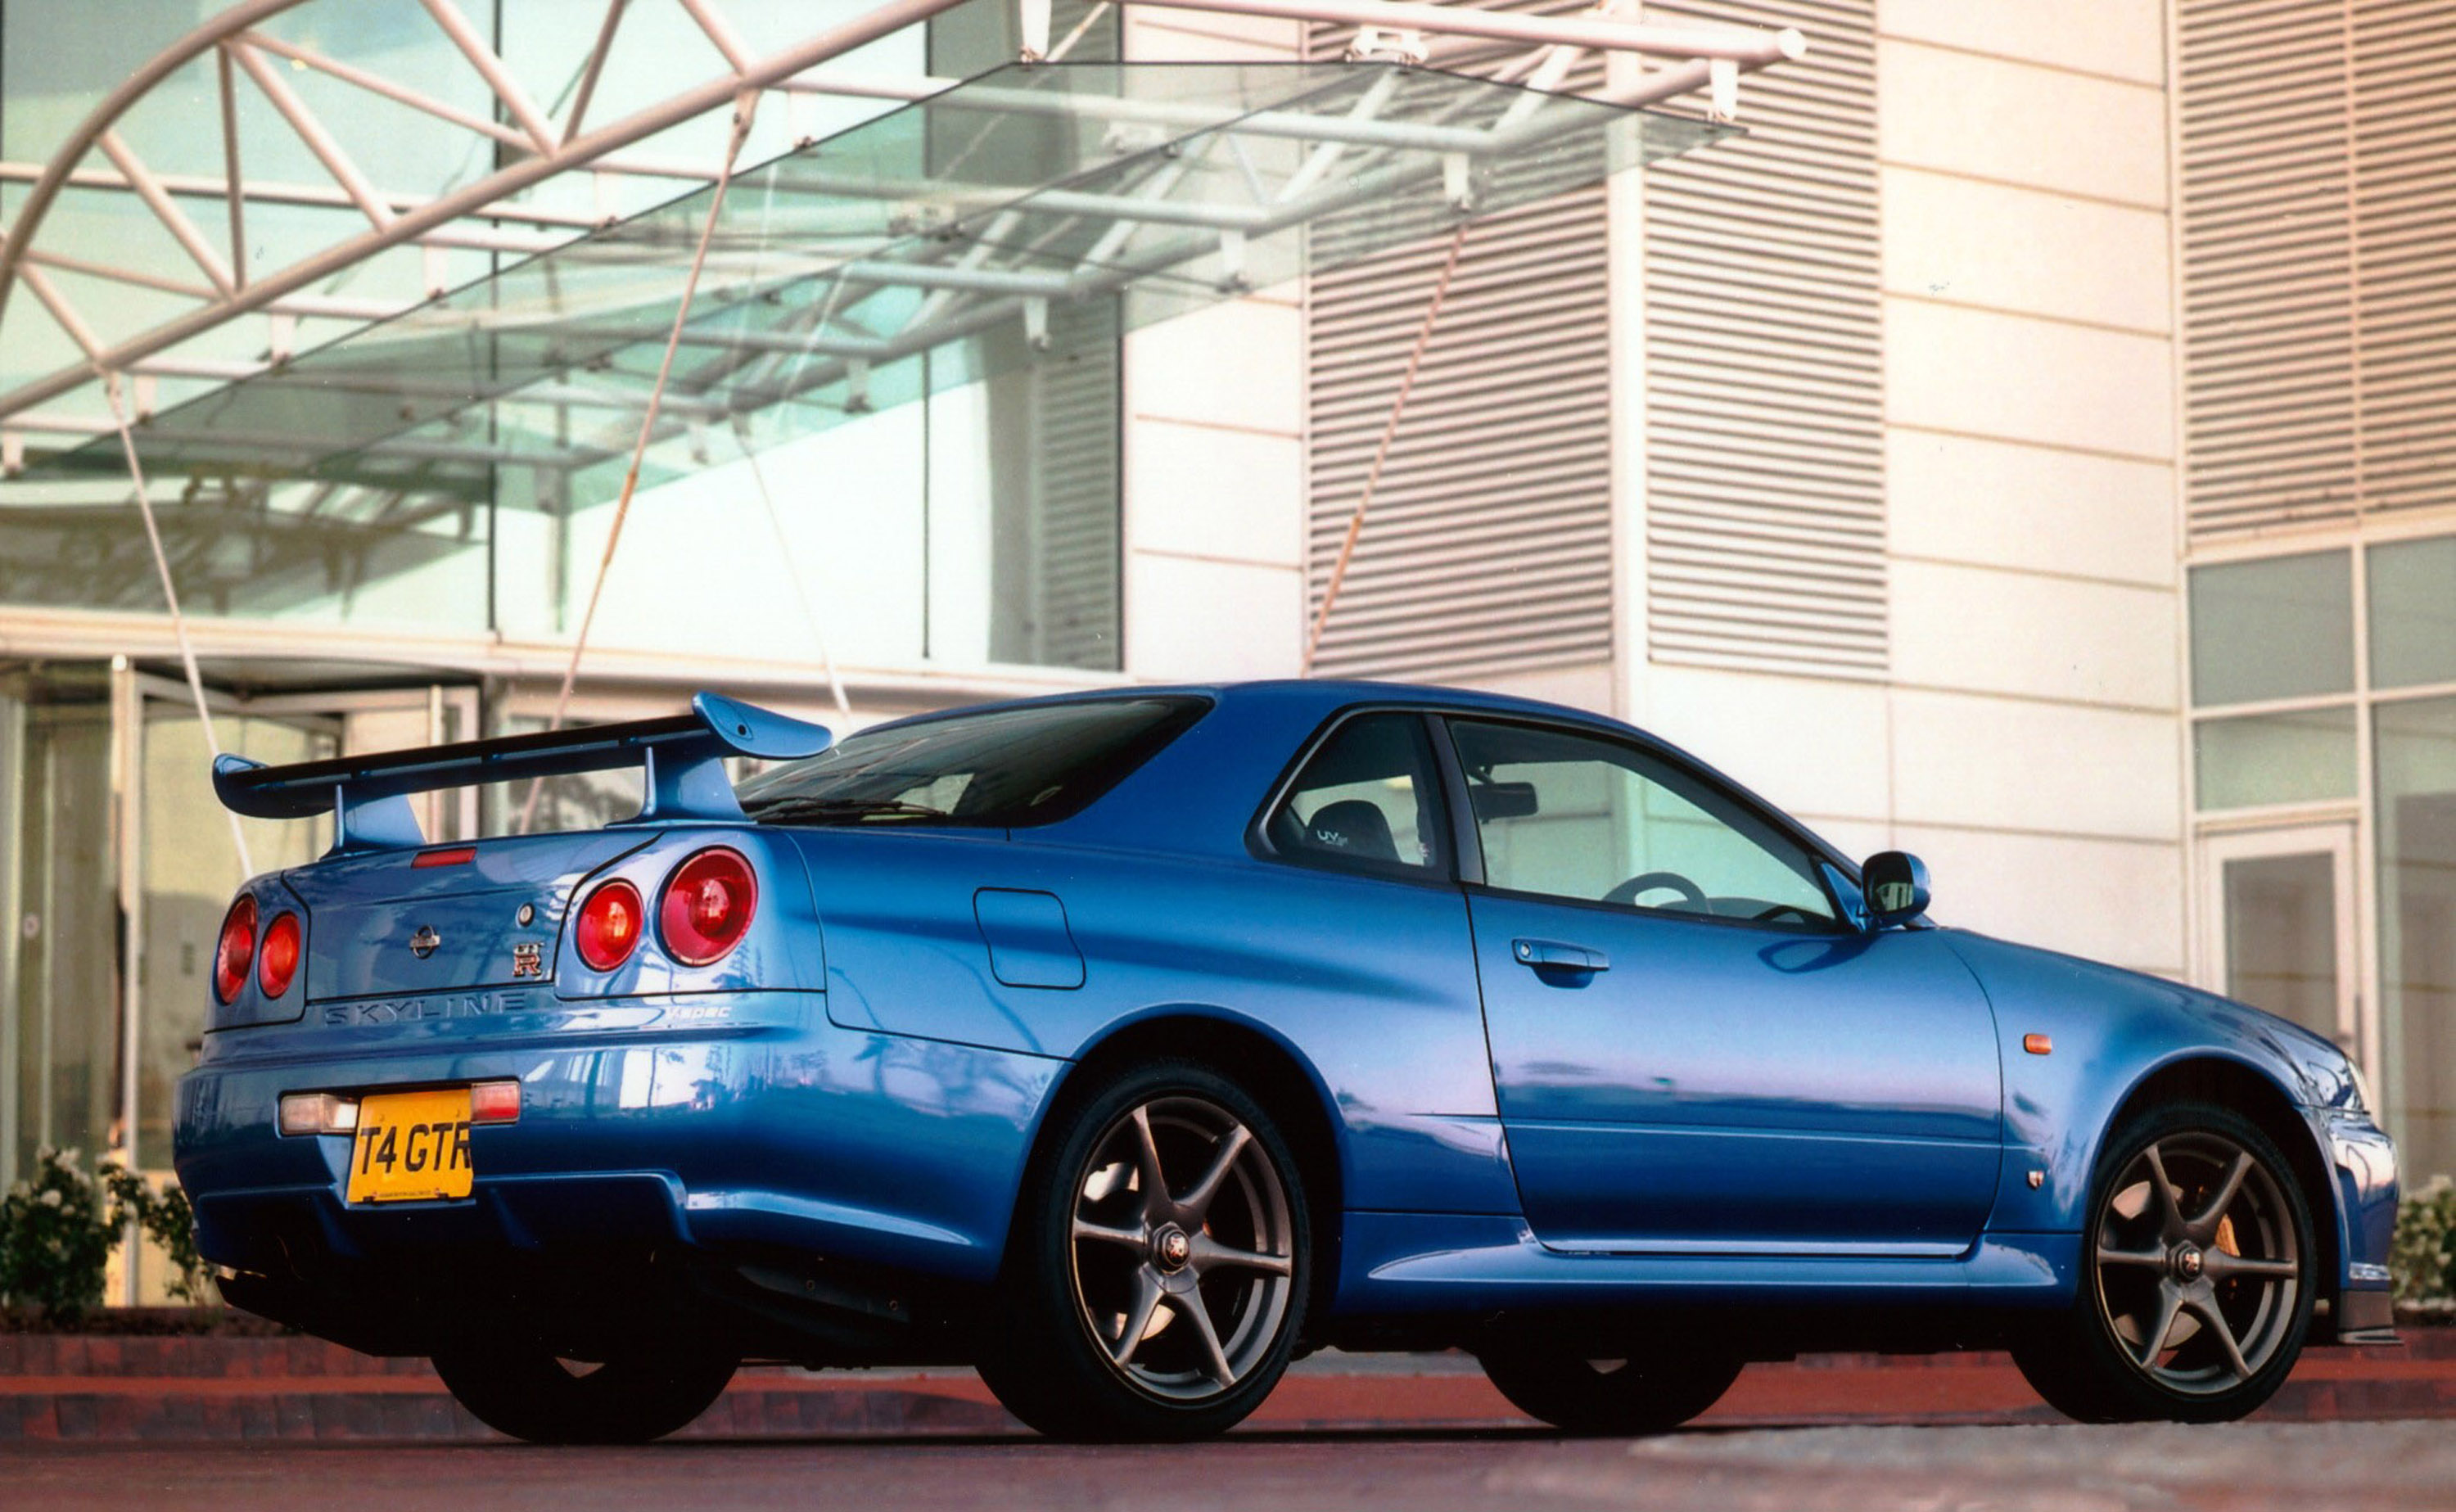 3DTuning of Nissan Skyline GTR Coupe 2002 3DTuningcom  unique